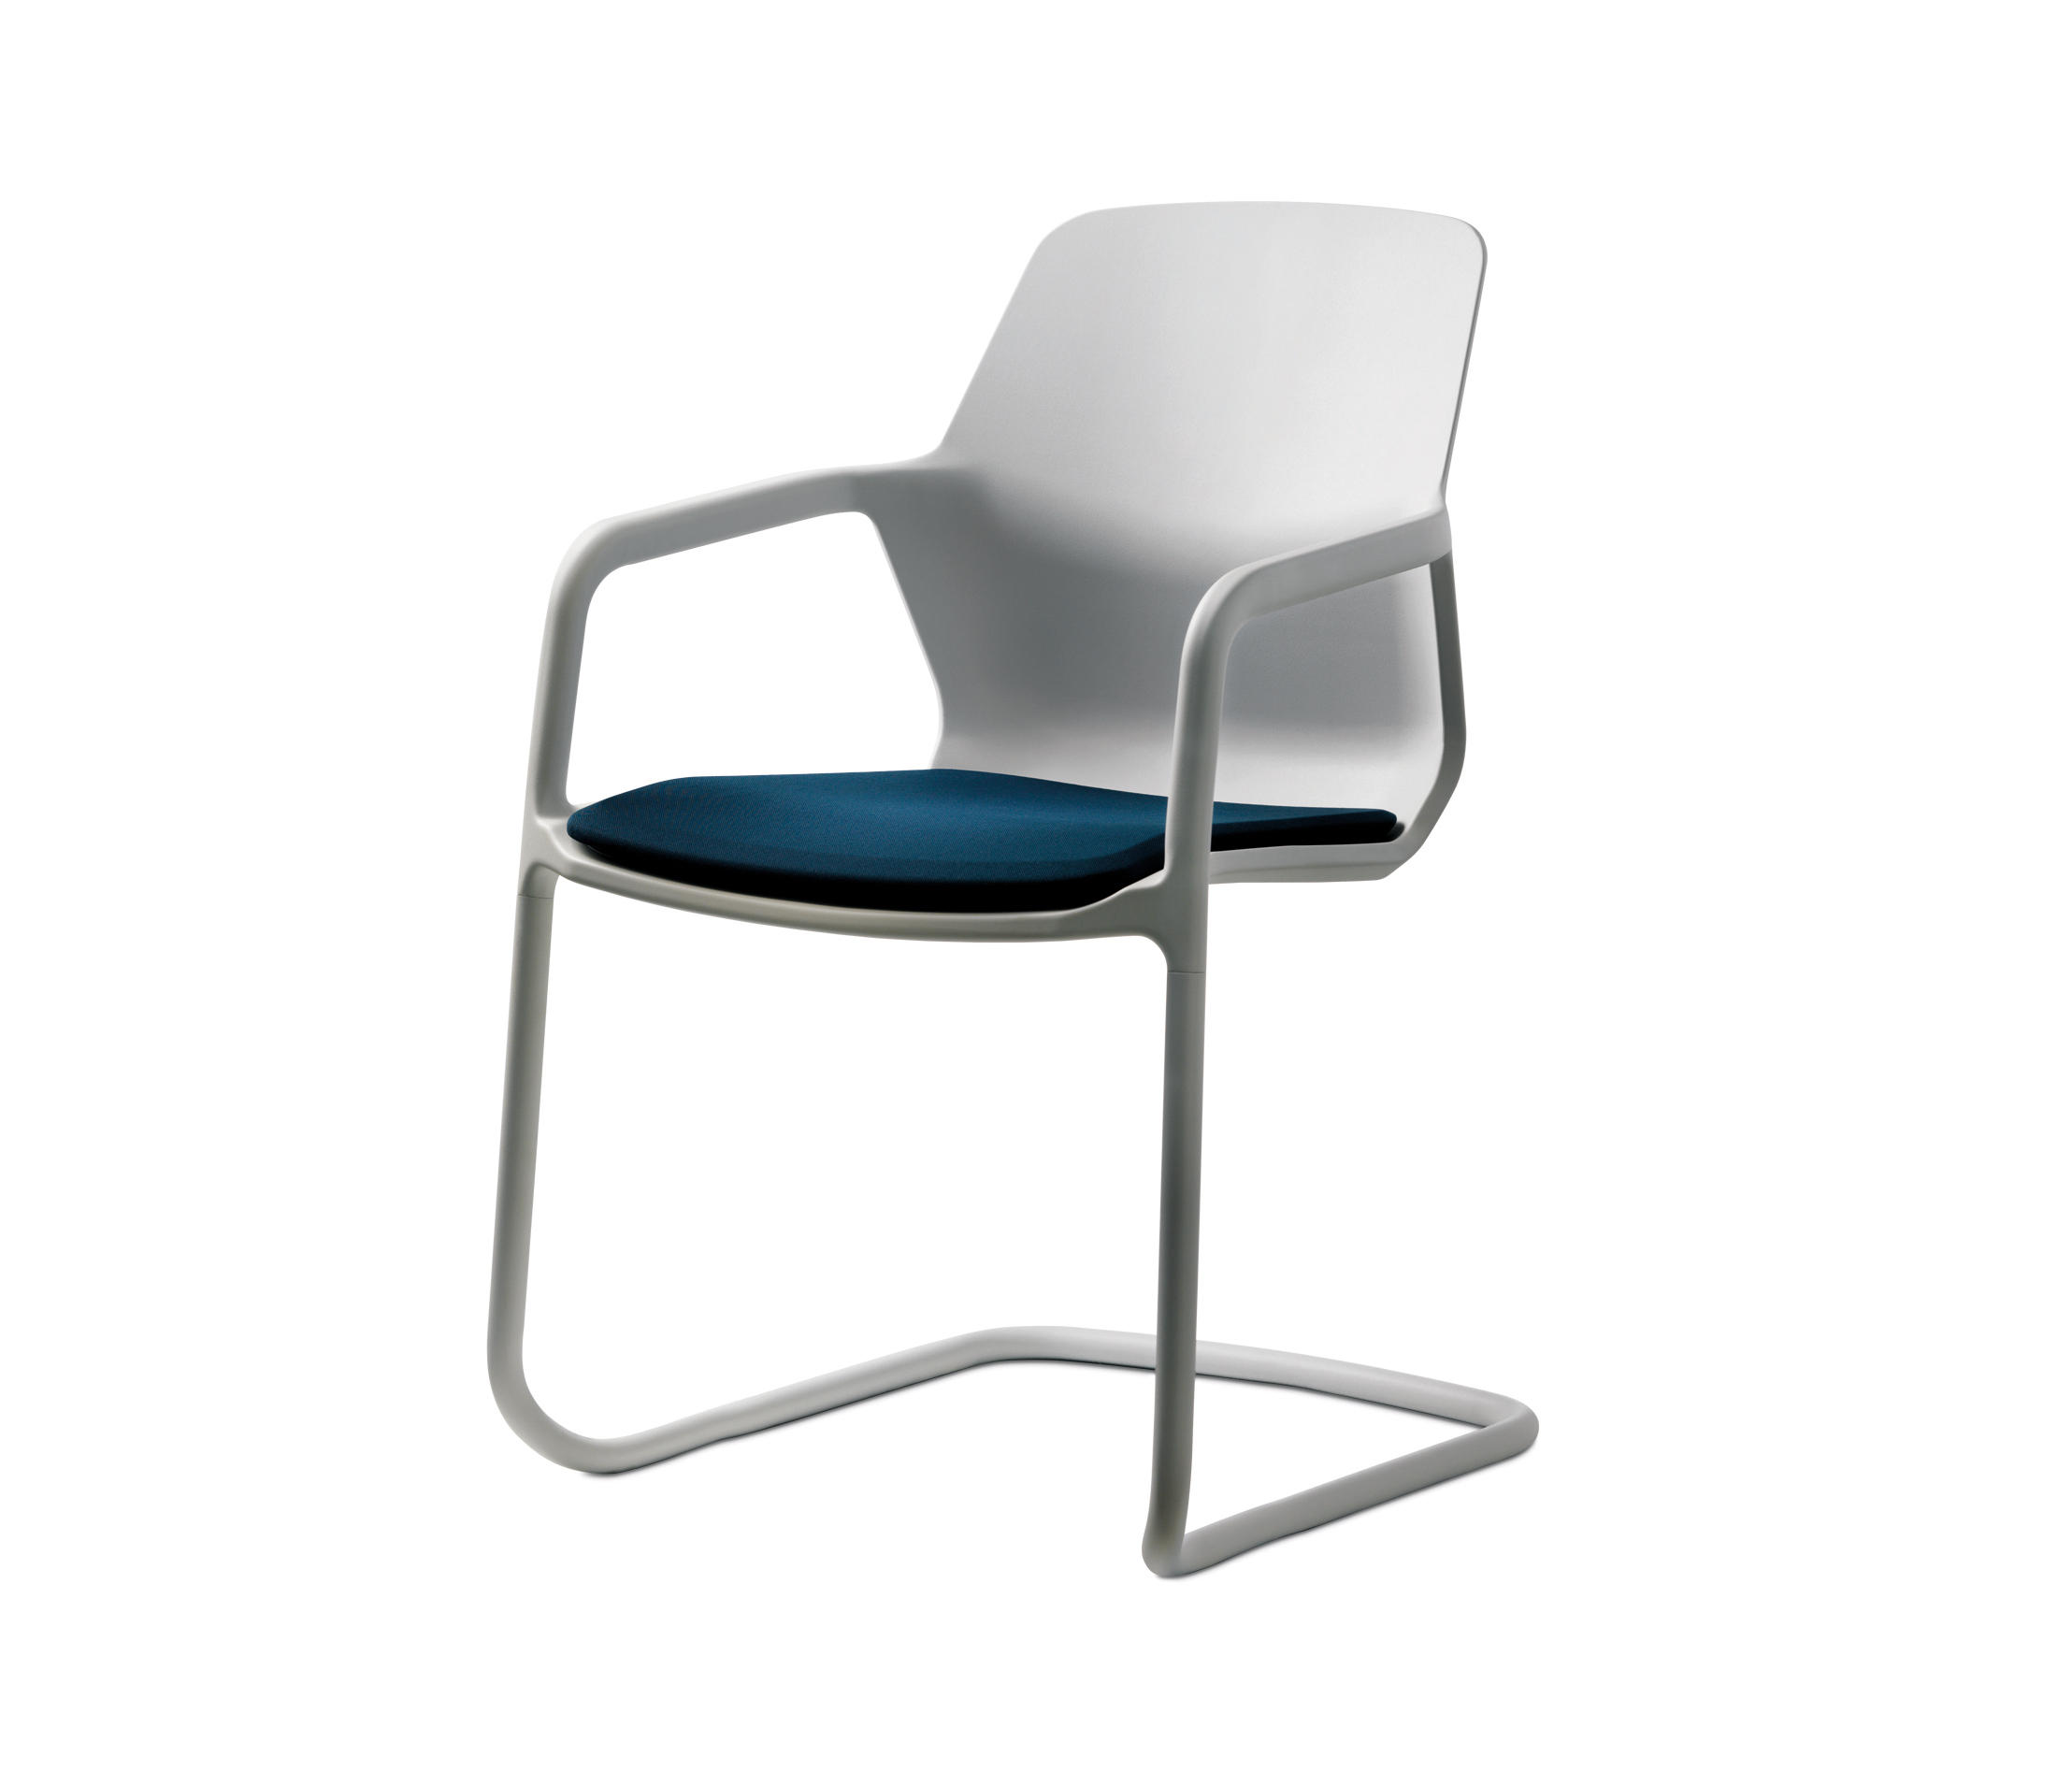 METRIK - Visitors chairs / Side chairs from Wilkhahn | Architonic